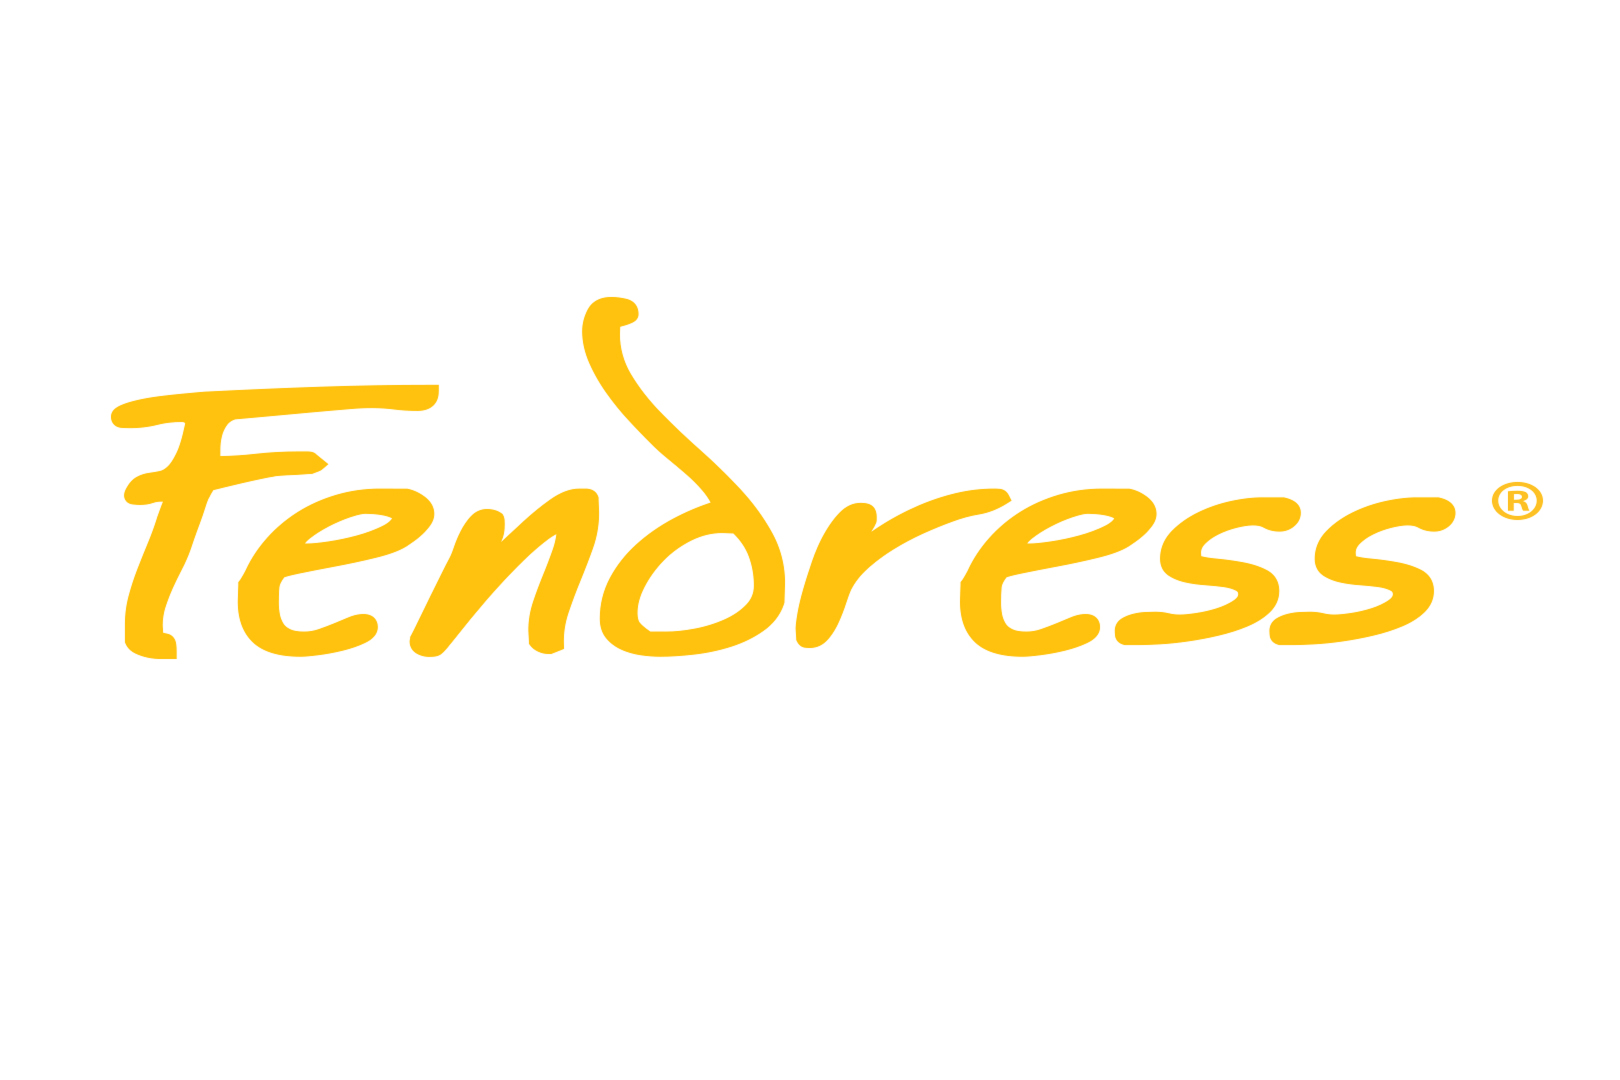 FENDRESS (Ixel Marine)